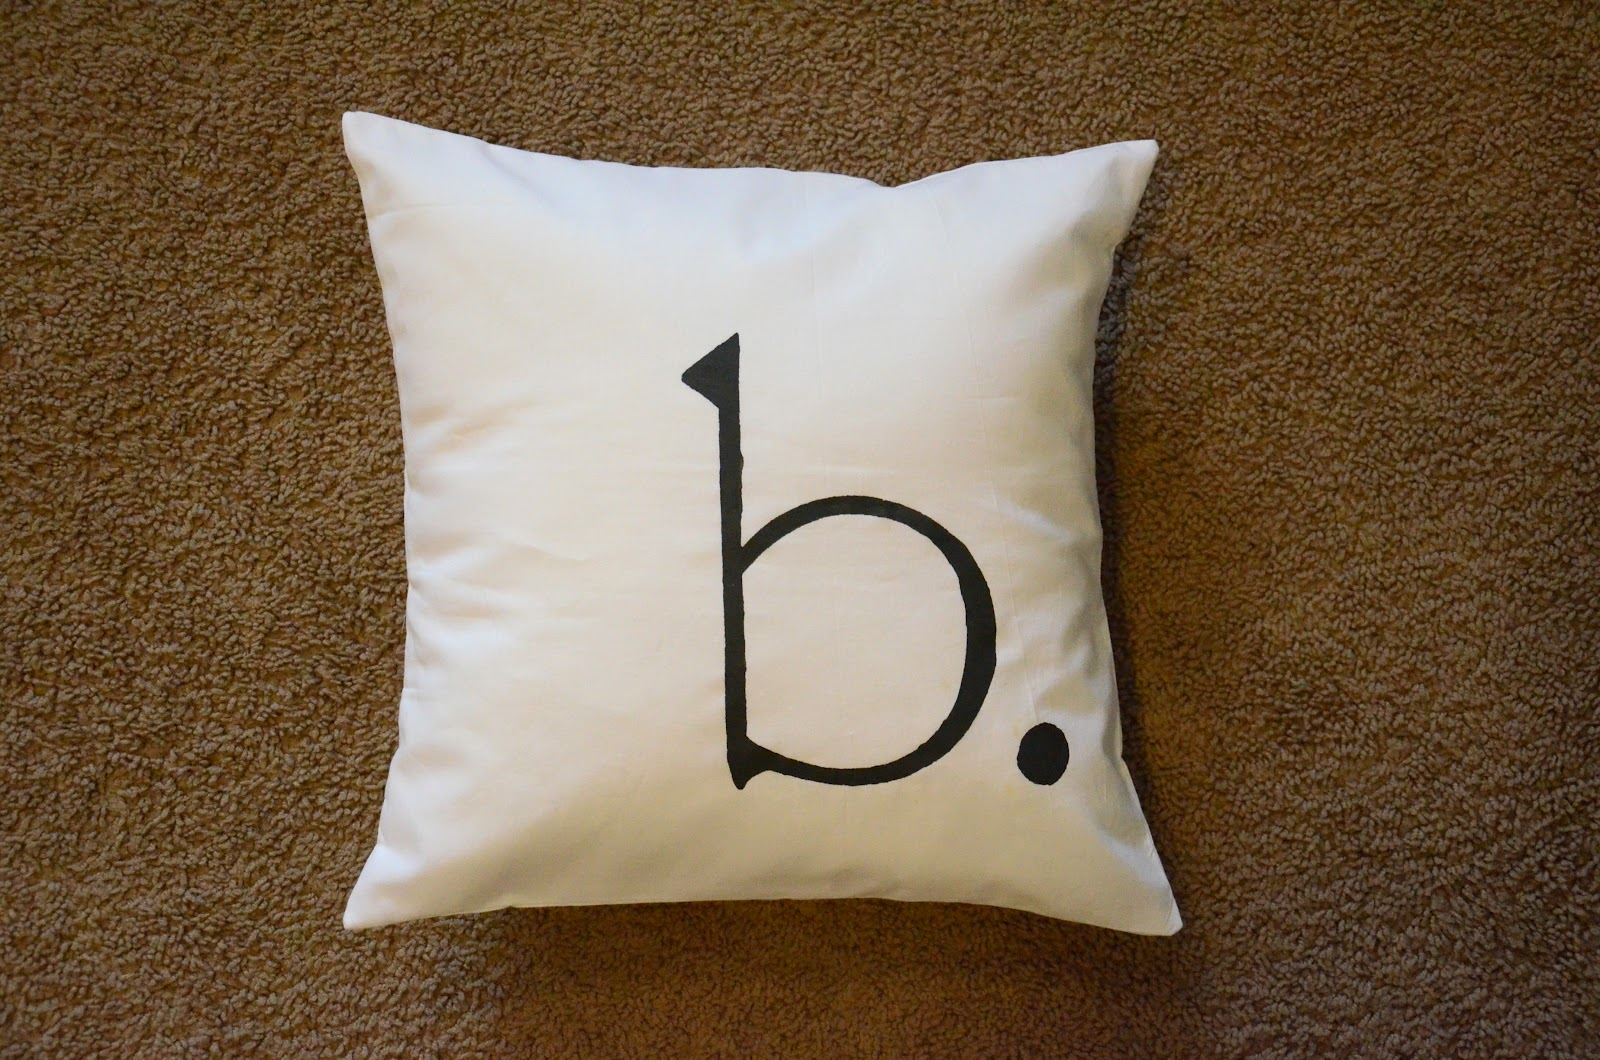 DSC 6273 - The 16 Reasons Tourists Love Monogrammed Throw Pillow